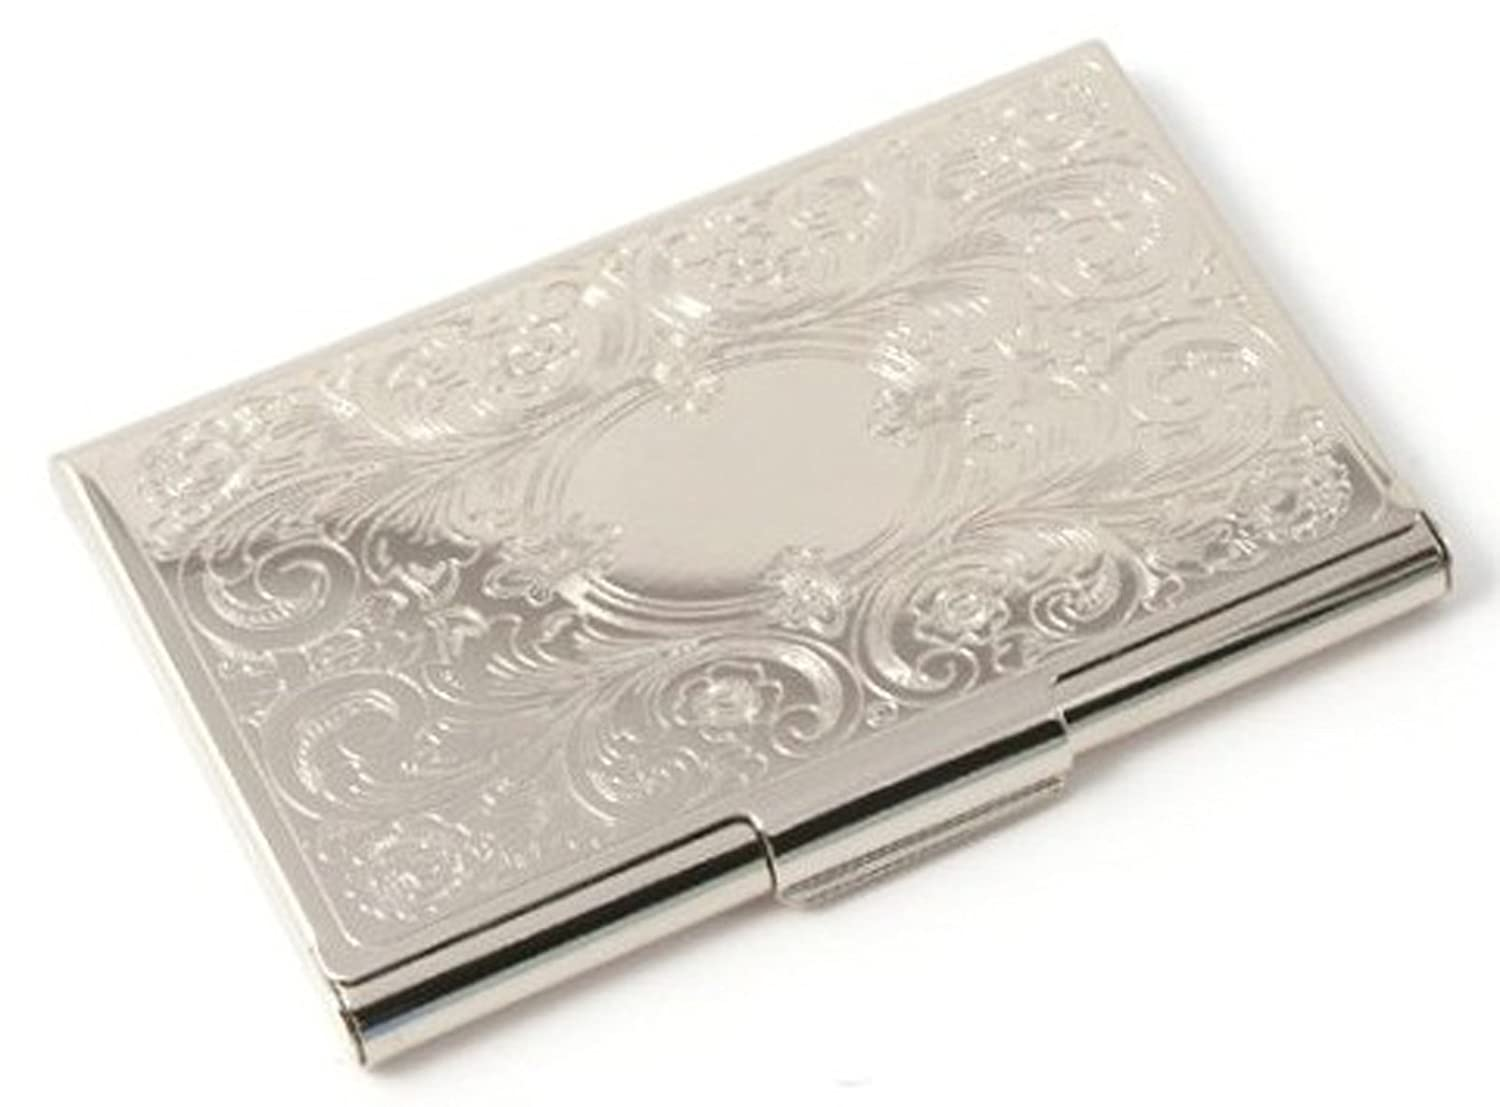 Amazon.com: Floral Embossed Business Card Case (Silver Tone): Shoes